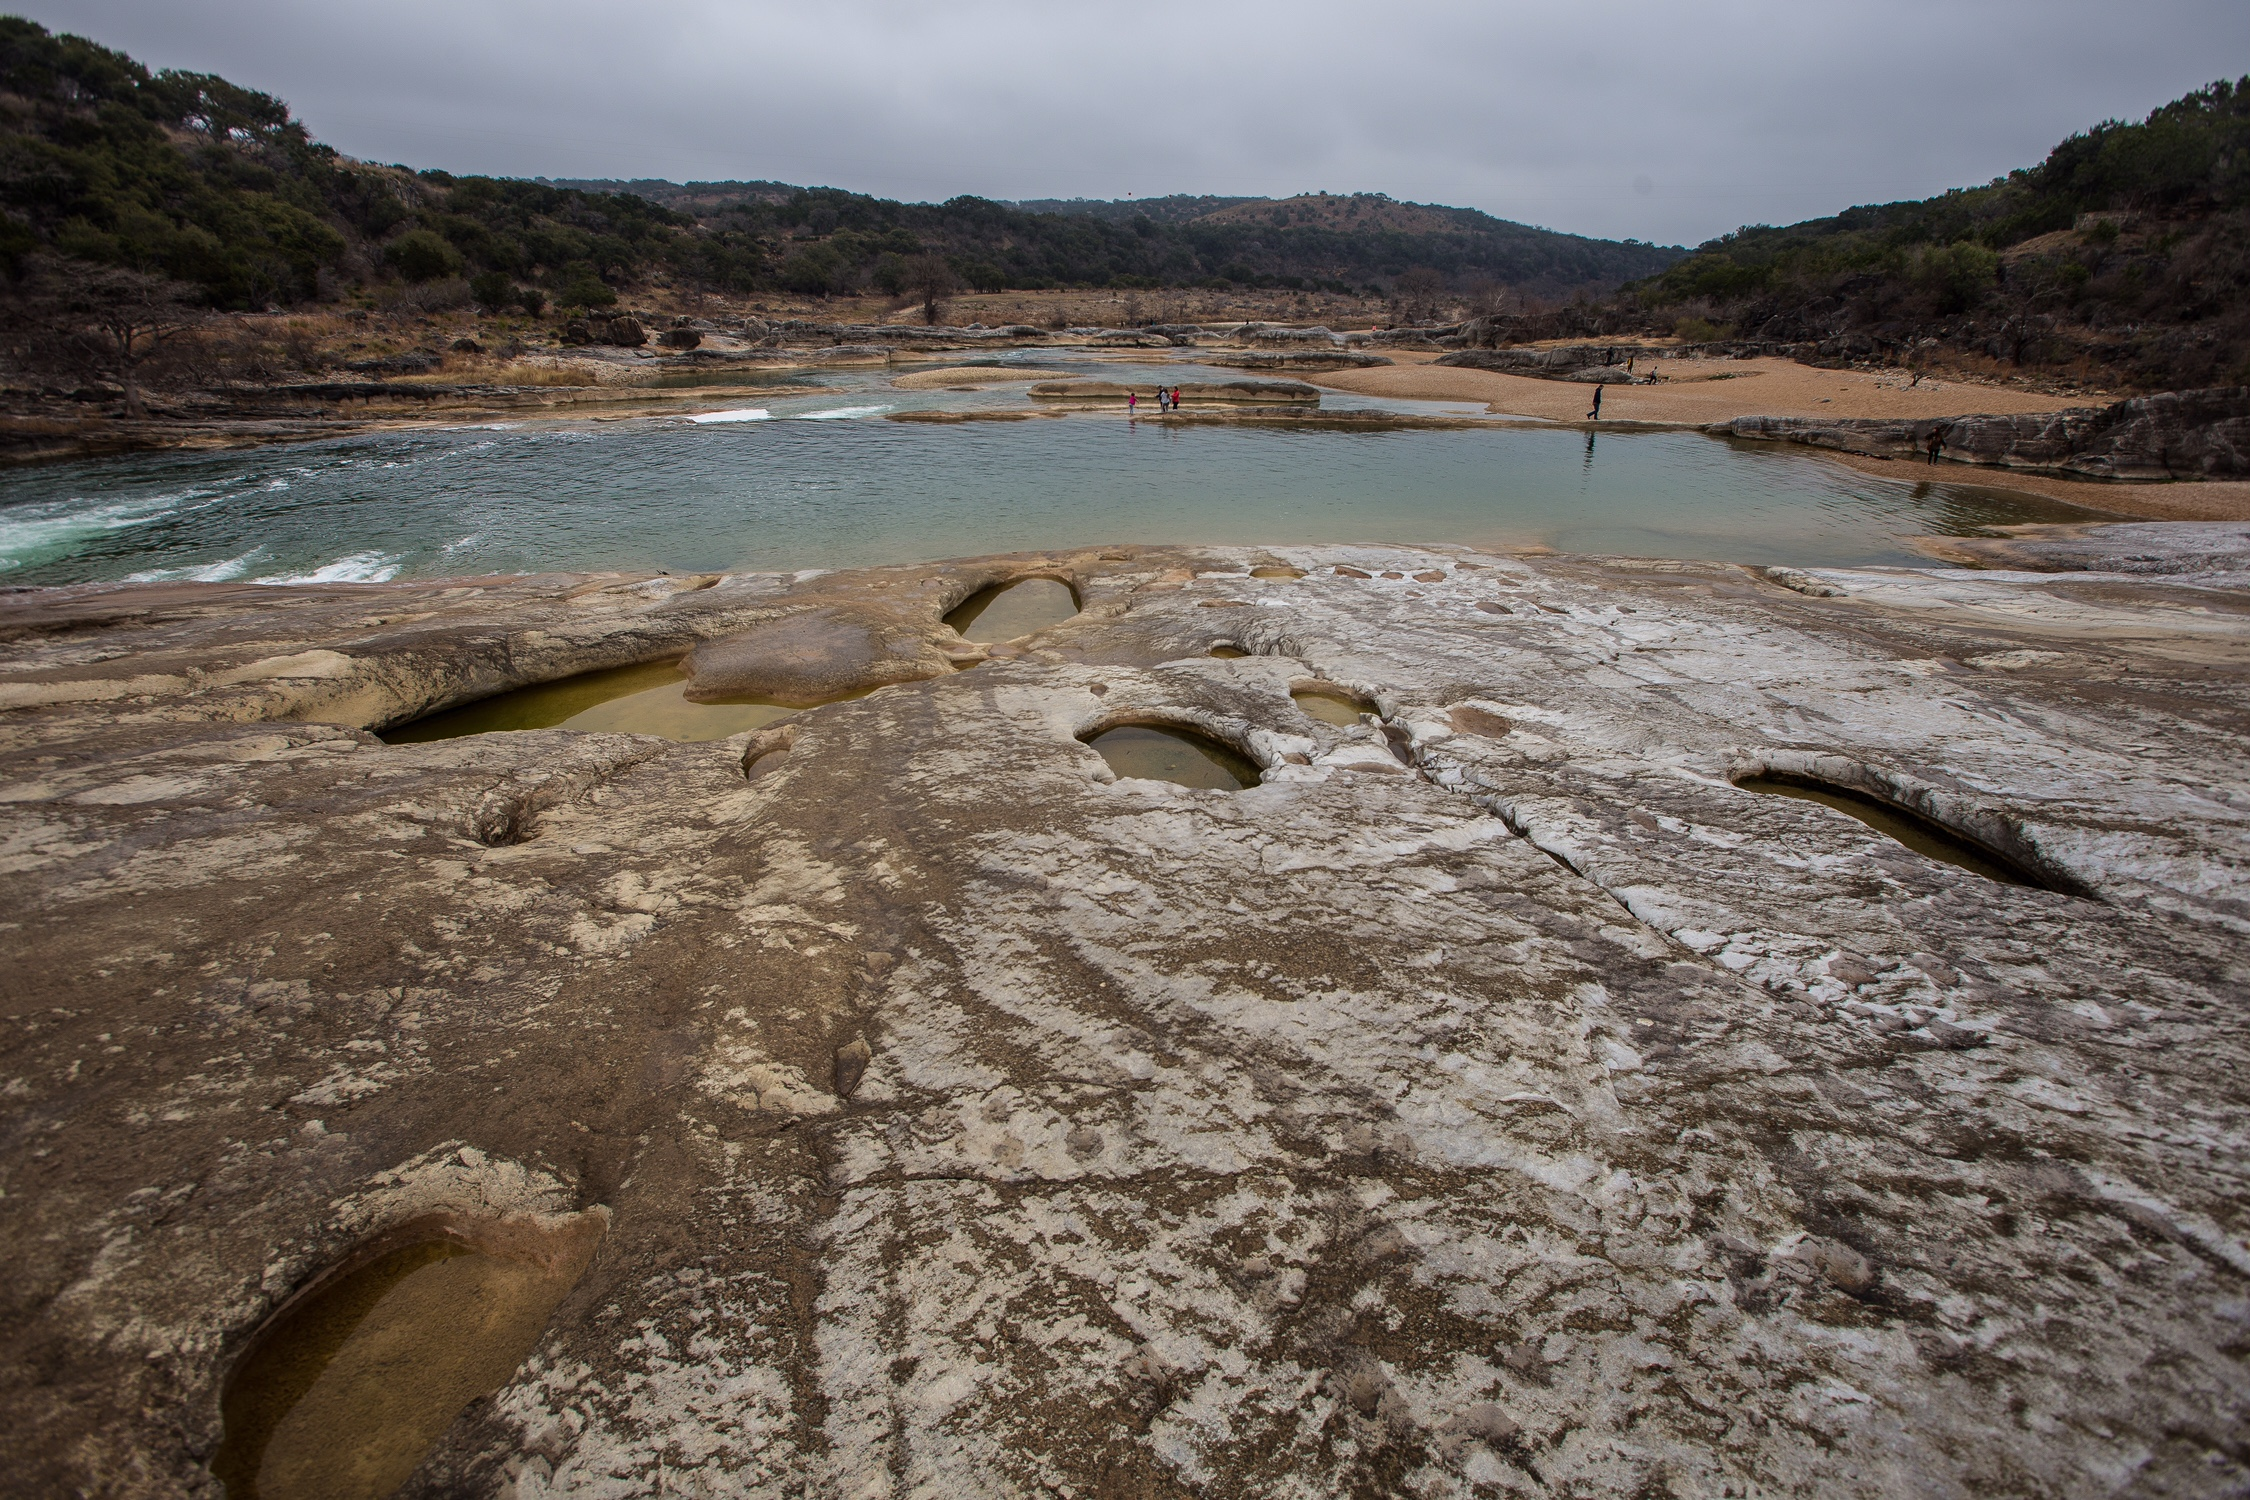 The Pedernales River running over limestone in Pedernales Falls State Park, Texas. Photo by Lizzie Jespersen